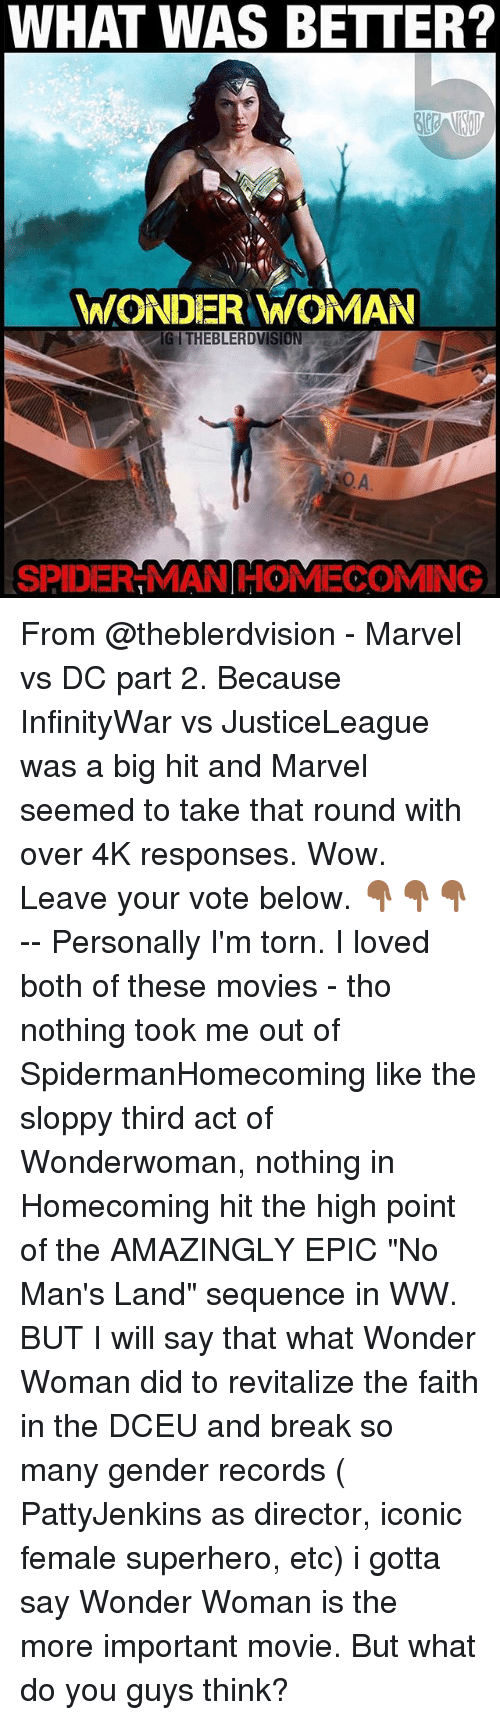 "Memes, Movies, and Spider: WHAT WAS BETTER?  WONDER WOMAN  IGITHEBLERDVISION  SPIDER-MAN HOMECOMING From @theblerdvision - Marvel vs DC part 2. Because InfinityWar vs JusticeLeague was a big hit and Marvel seemed to take that round with over 4K responses. Wow. Leave your vote below. 👇🏾👇🏾👇🏾 -- Personally I'm torn. I loved both of these movies - tho nothing took me out of SpidermanHomecoming like the sloppy third act of Wonderwoman, nothing in Homecoming hit the high point of the AMAZINGLY EPIC ""No Man's Land"" sequence in WW. BUT I will say that what Wonder Woman did to revitalize the faith in the DCEU and break so many gender records ( PattyJenkins as director, iconic female superhero, etc) i gotta say Wonder Woman is the more important movie. But what do you guys think?"